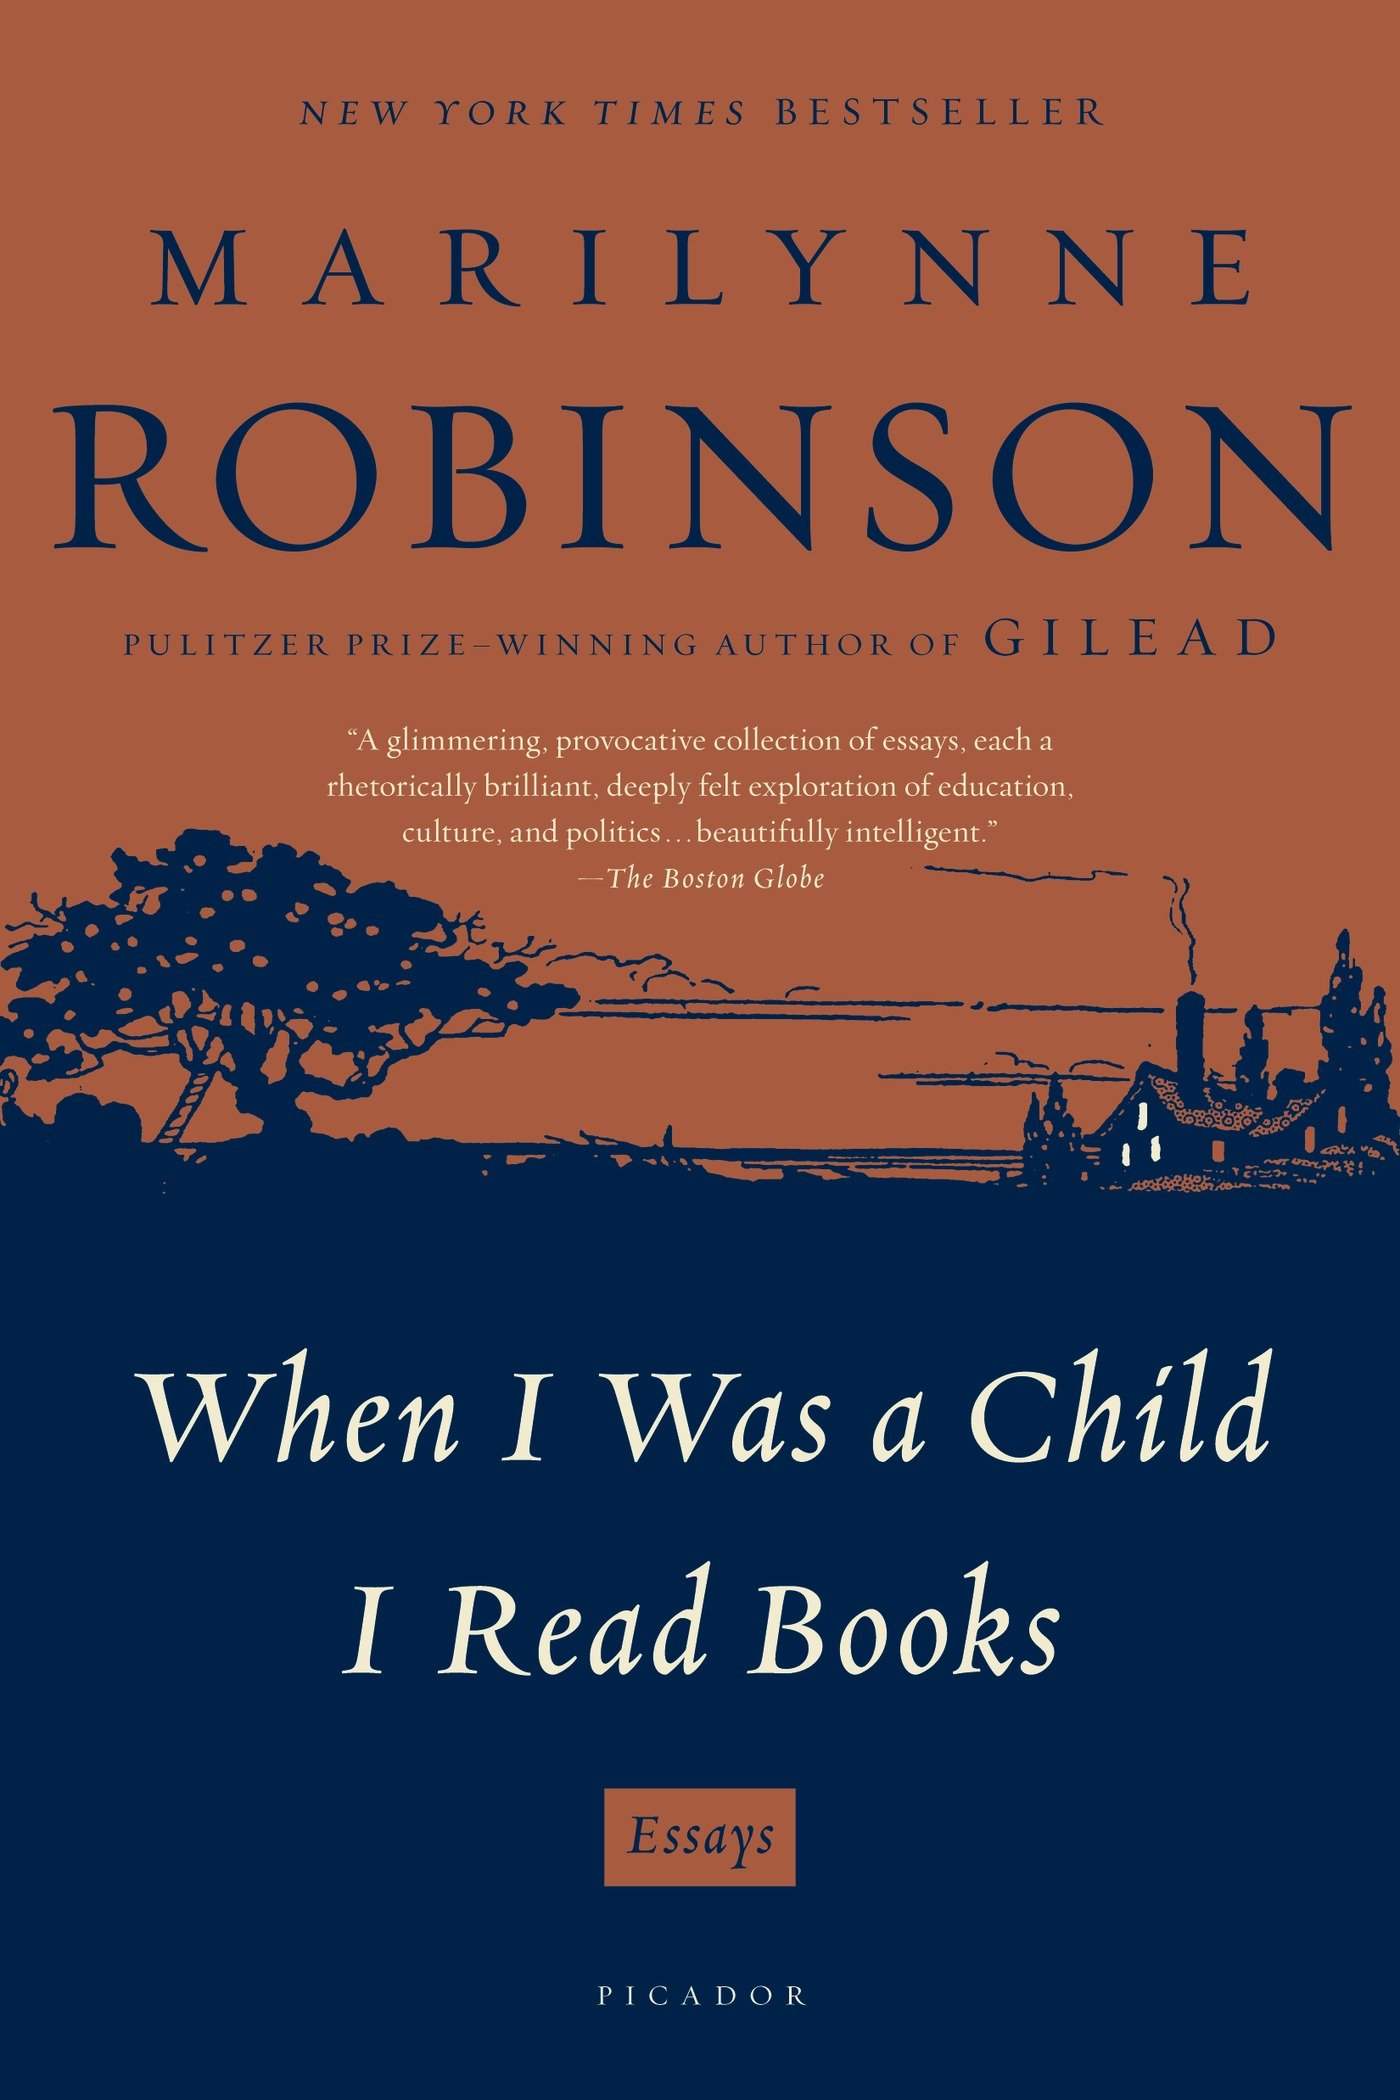 when i was a child i books essays marilynne robinson when i was a child i books essays marilynne robinson 9781250024053 amazon com books